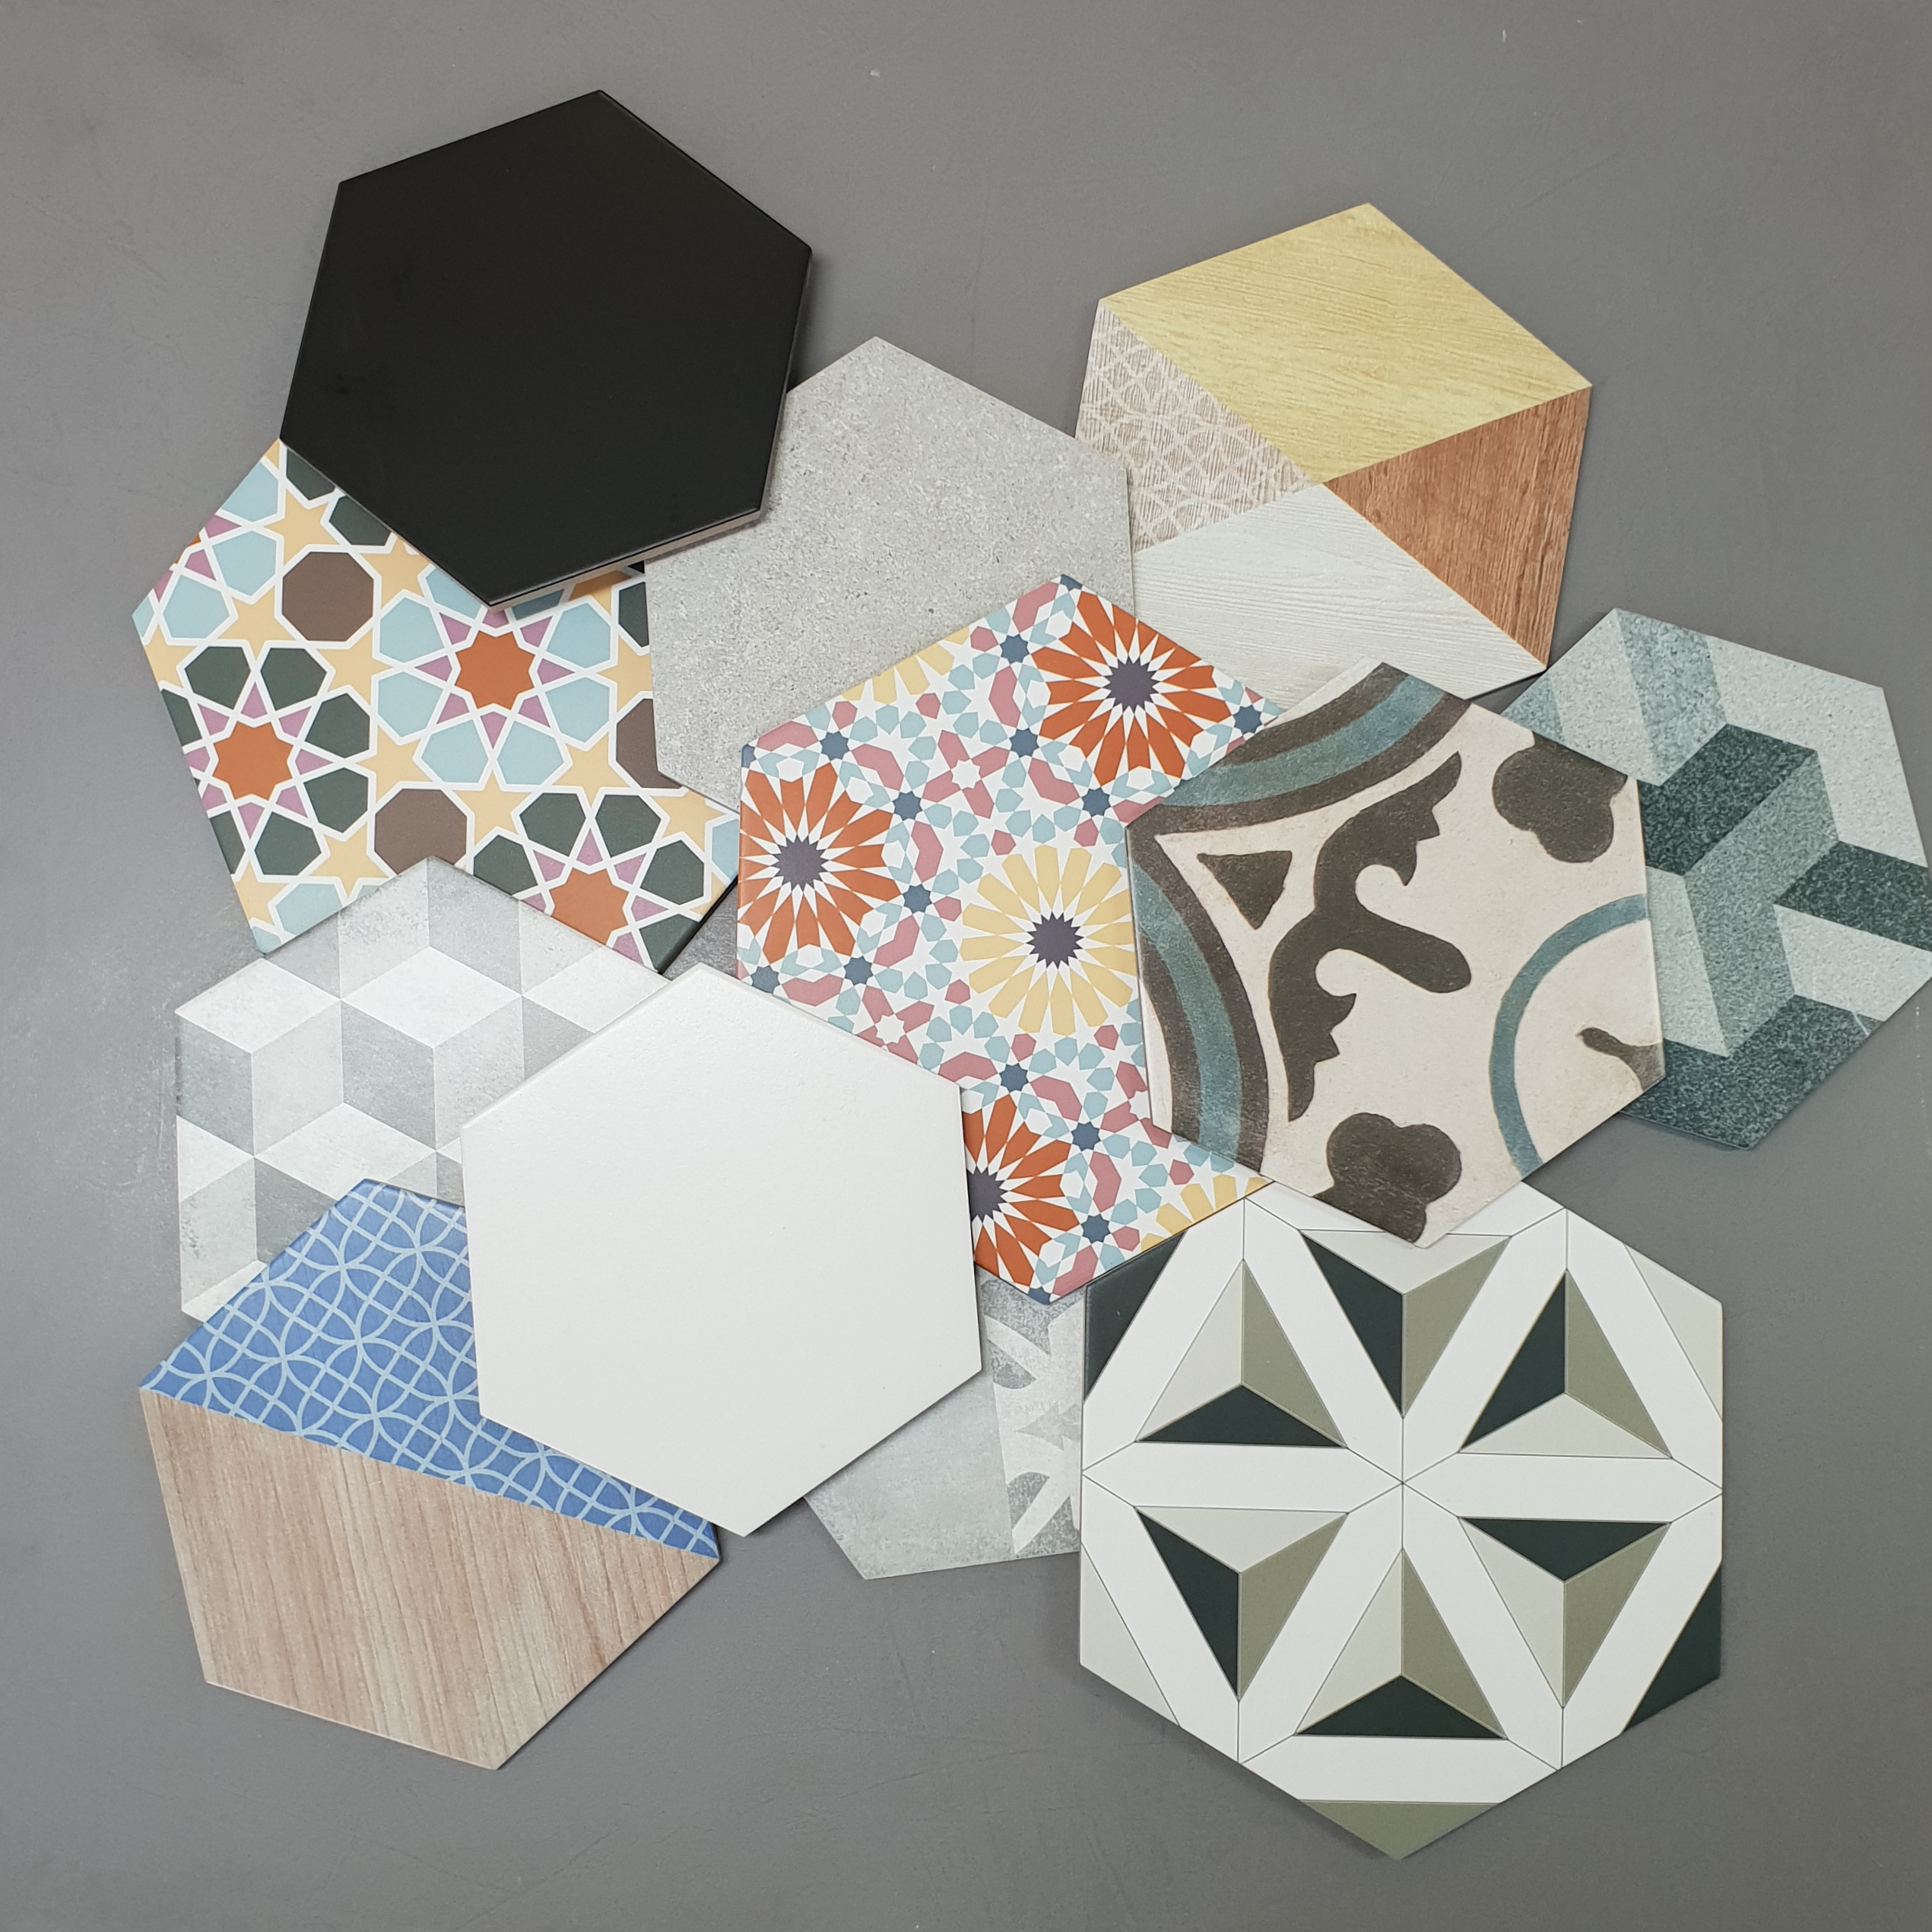 Hexagon / Octagonal Tiles